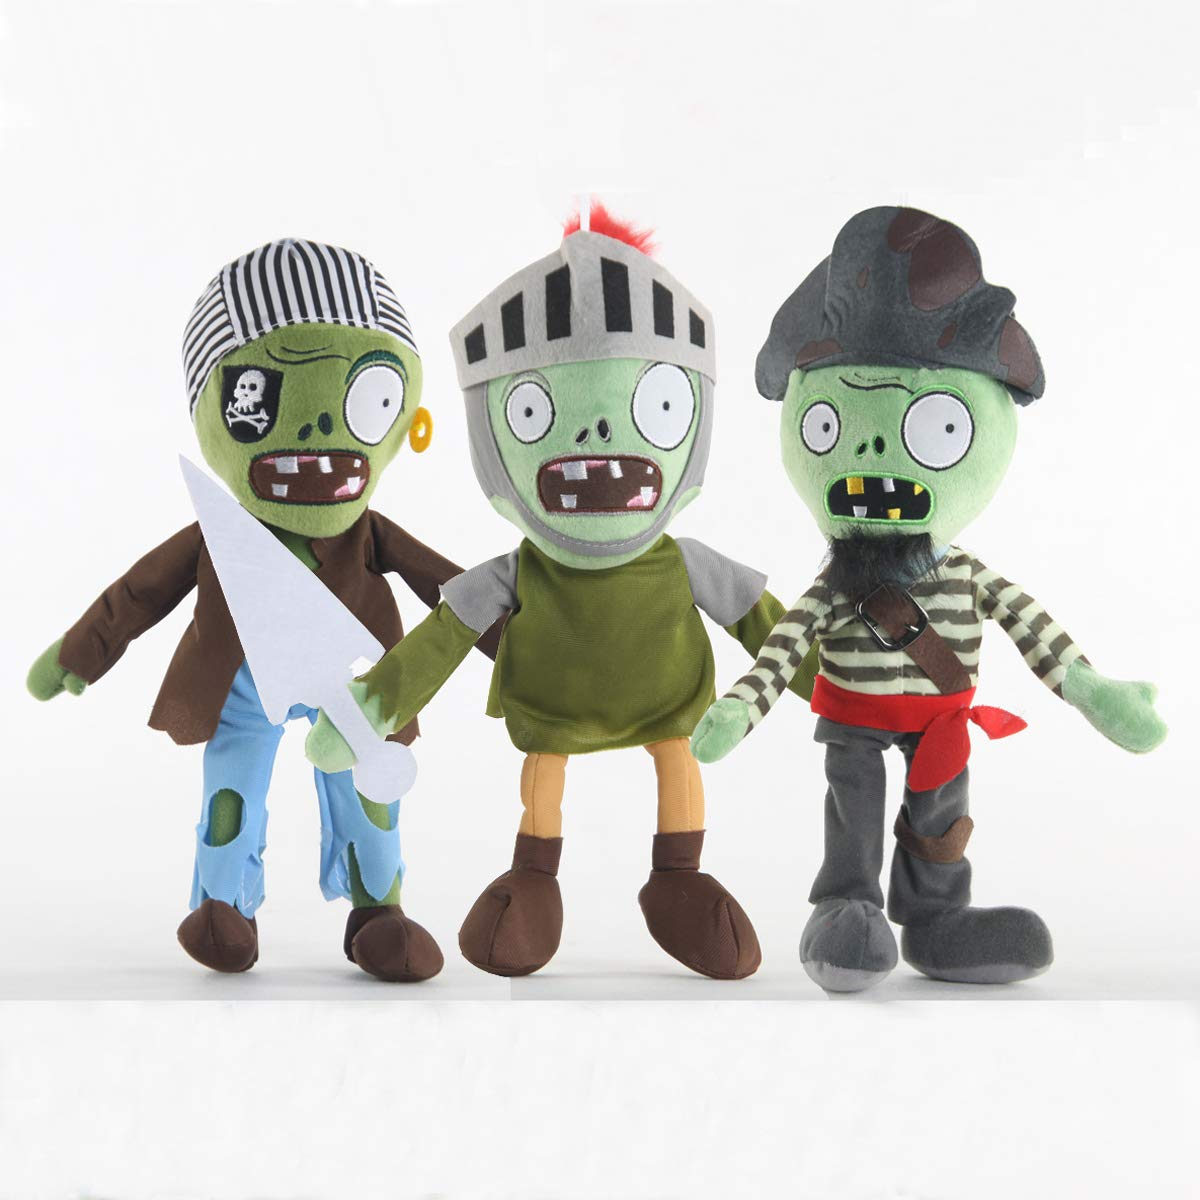 TavasHome 3 Pieces of Plants vs Zombies Plush Toy PVZ Stuffed Soft Game Doll Funny Gift by TavasHome